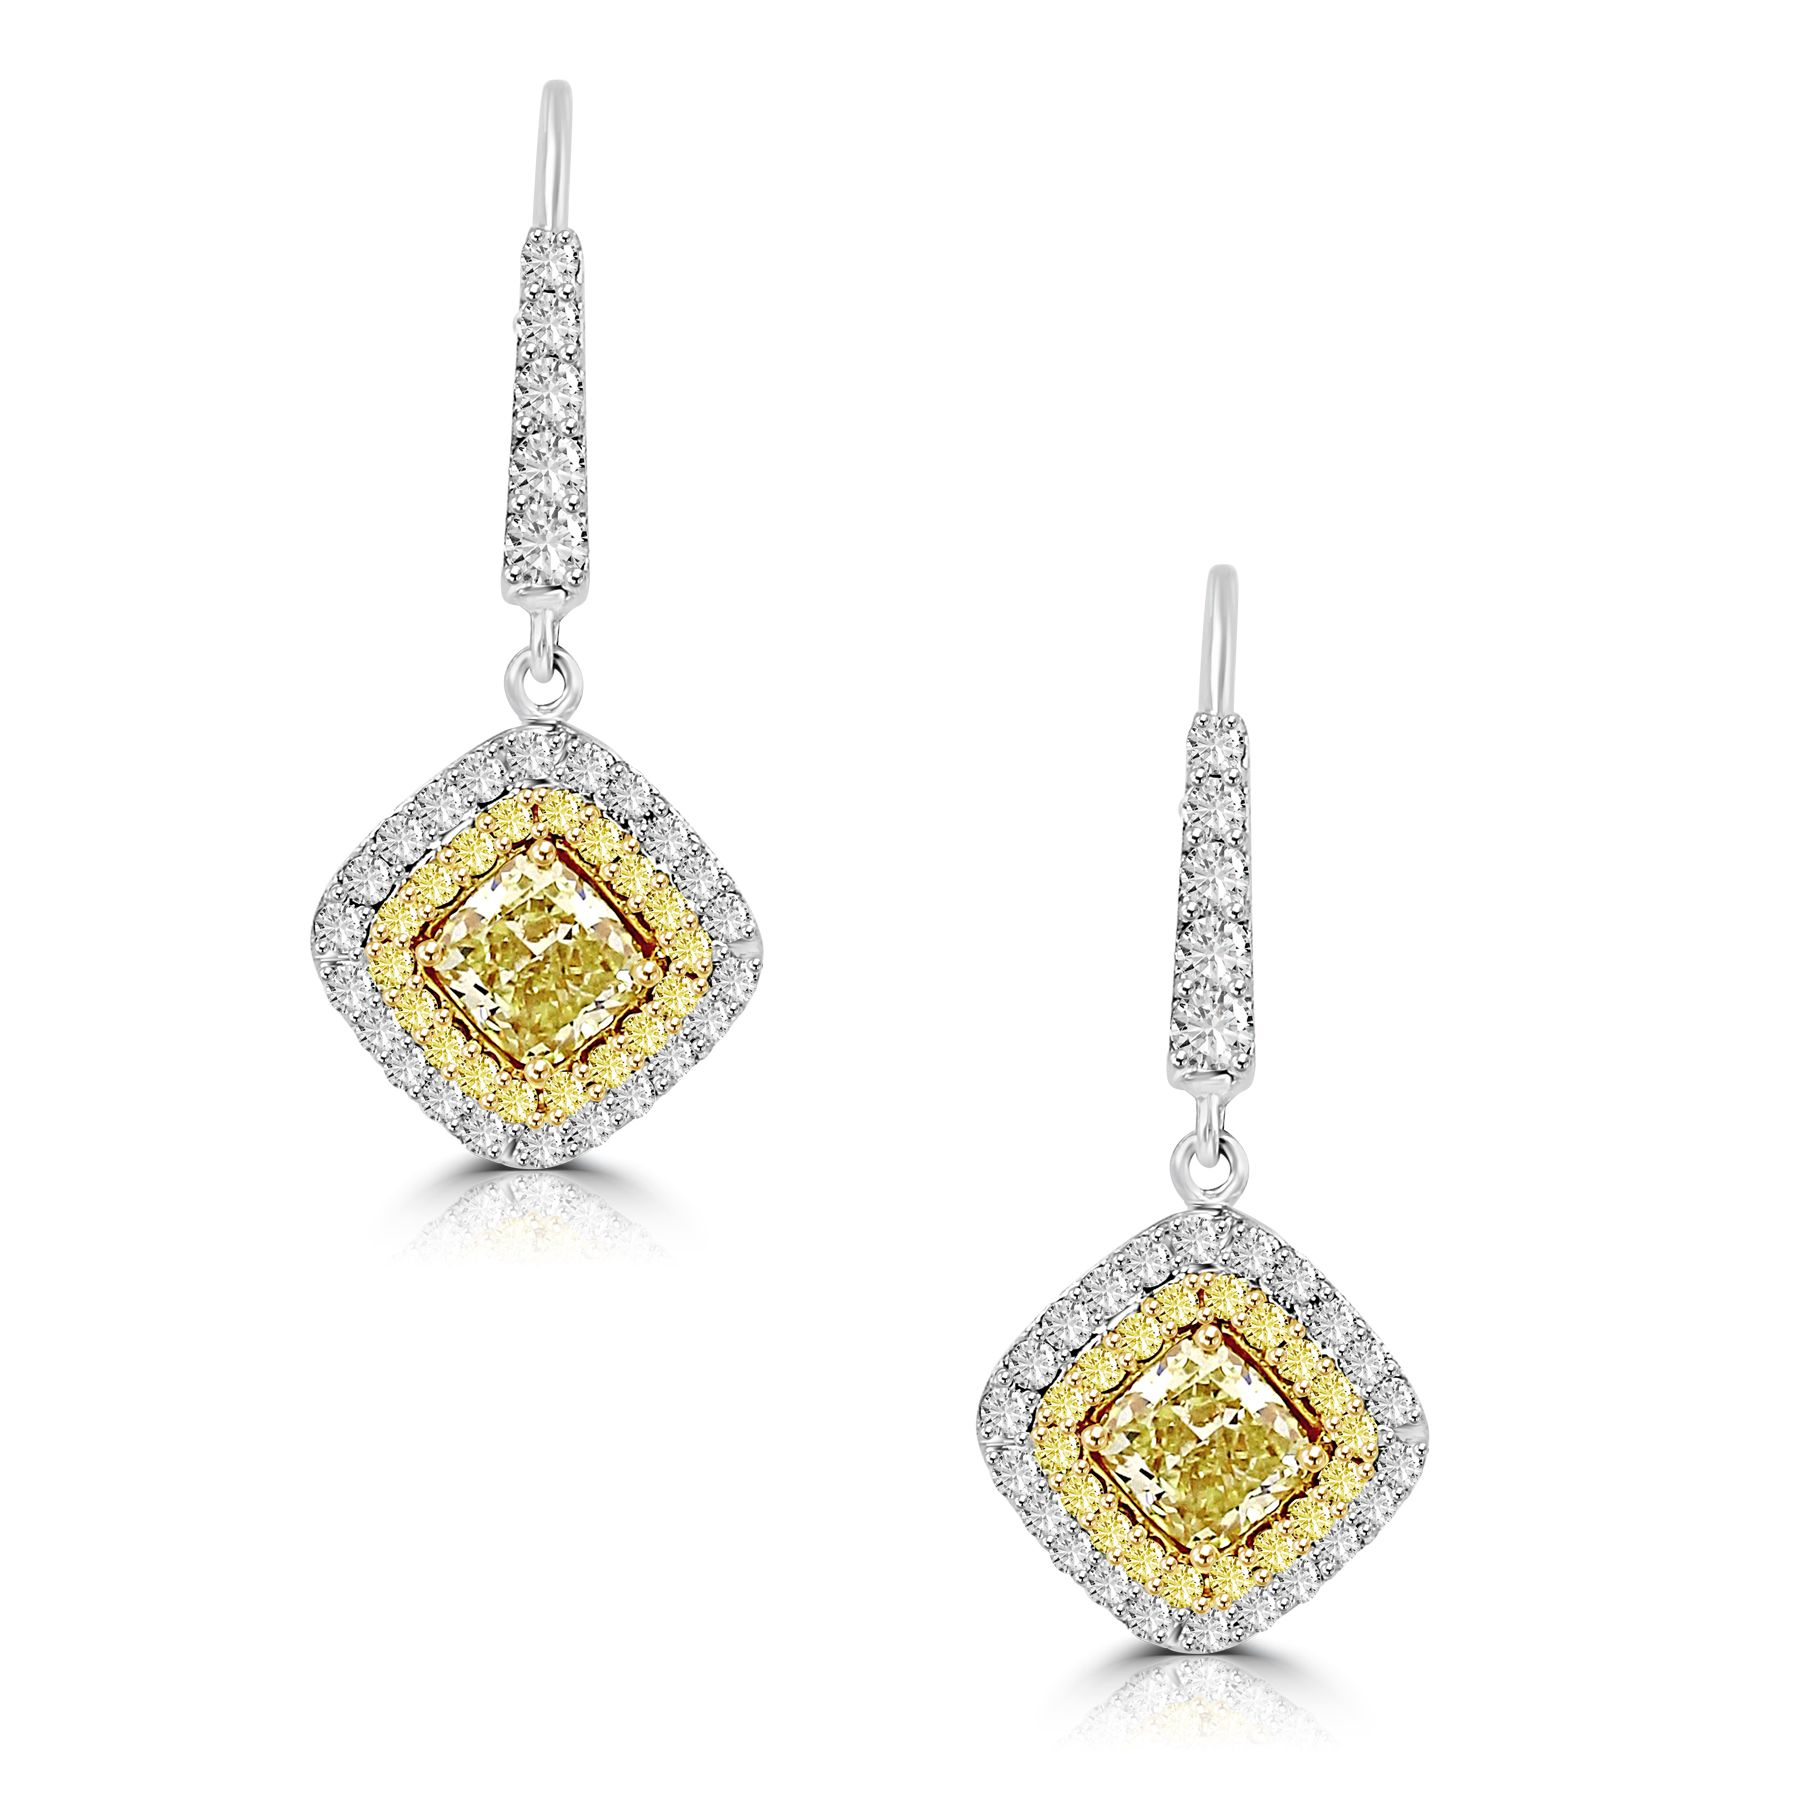 Natural Fancy Color Diamond Earrings Image